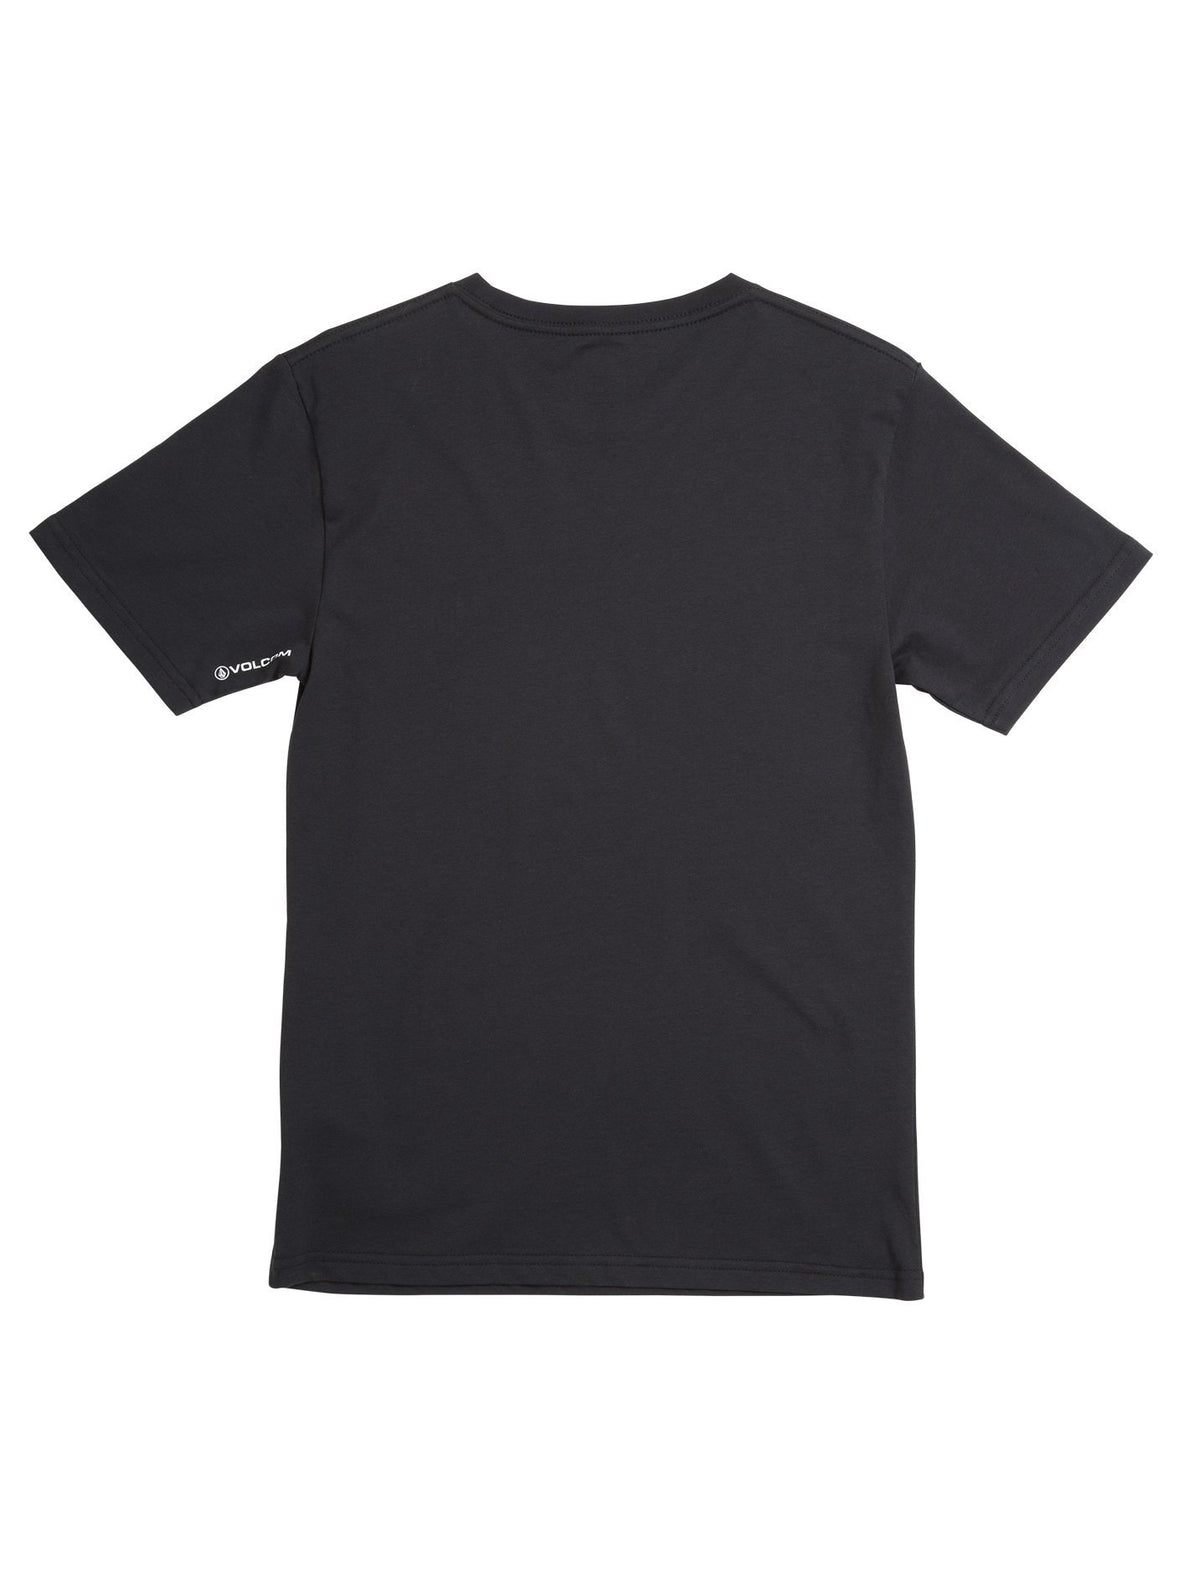 Check Wreck T-shirt (Kids) - Black